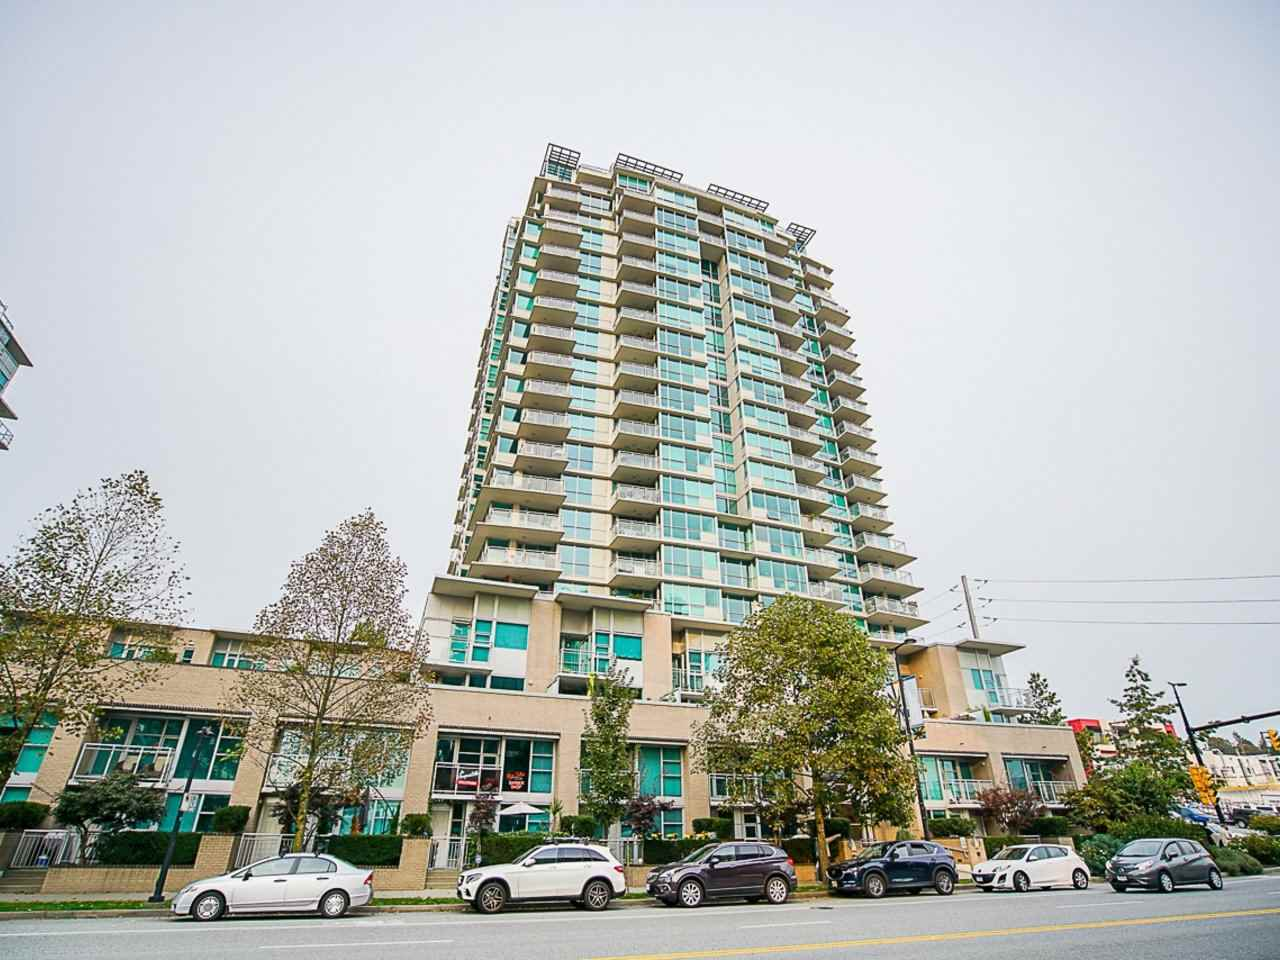 604 188 E ESPLANADE - Lower Lonsdale Apartment/Condo for sale, 2 Bedrooms (R2528391) - #1